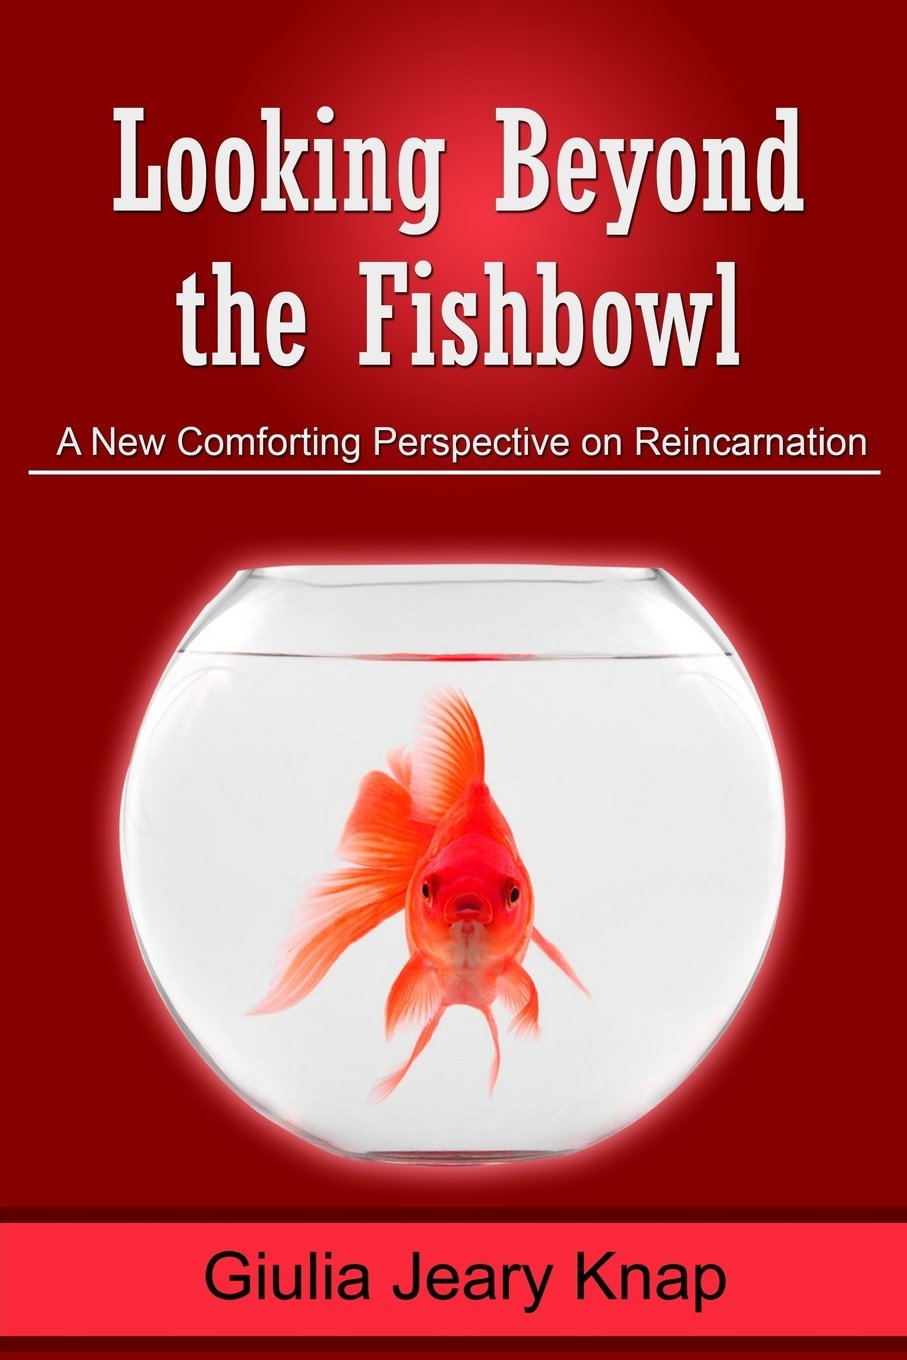 Looking Beyond the Fishbowl: A New Comforting Perspective on Reincarnation (Between Heaven and Earth) (Volume 2) ebook